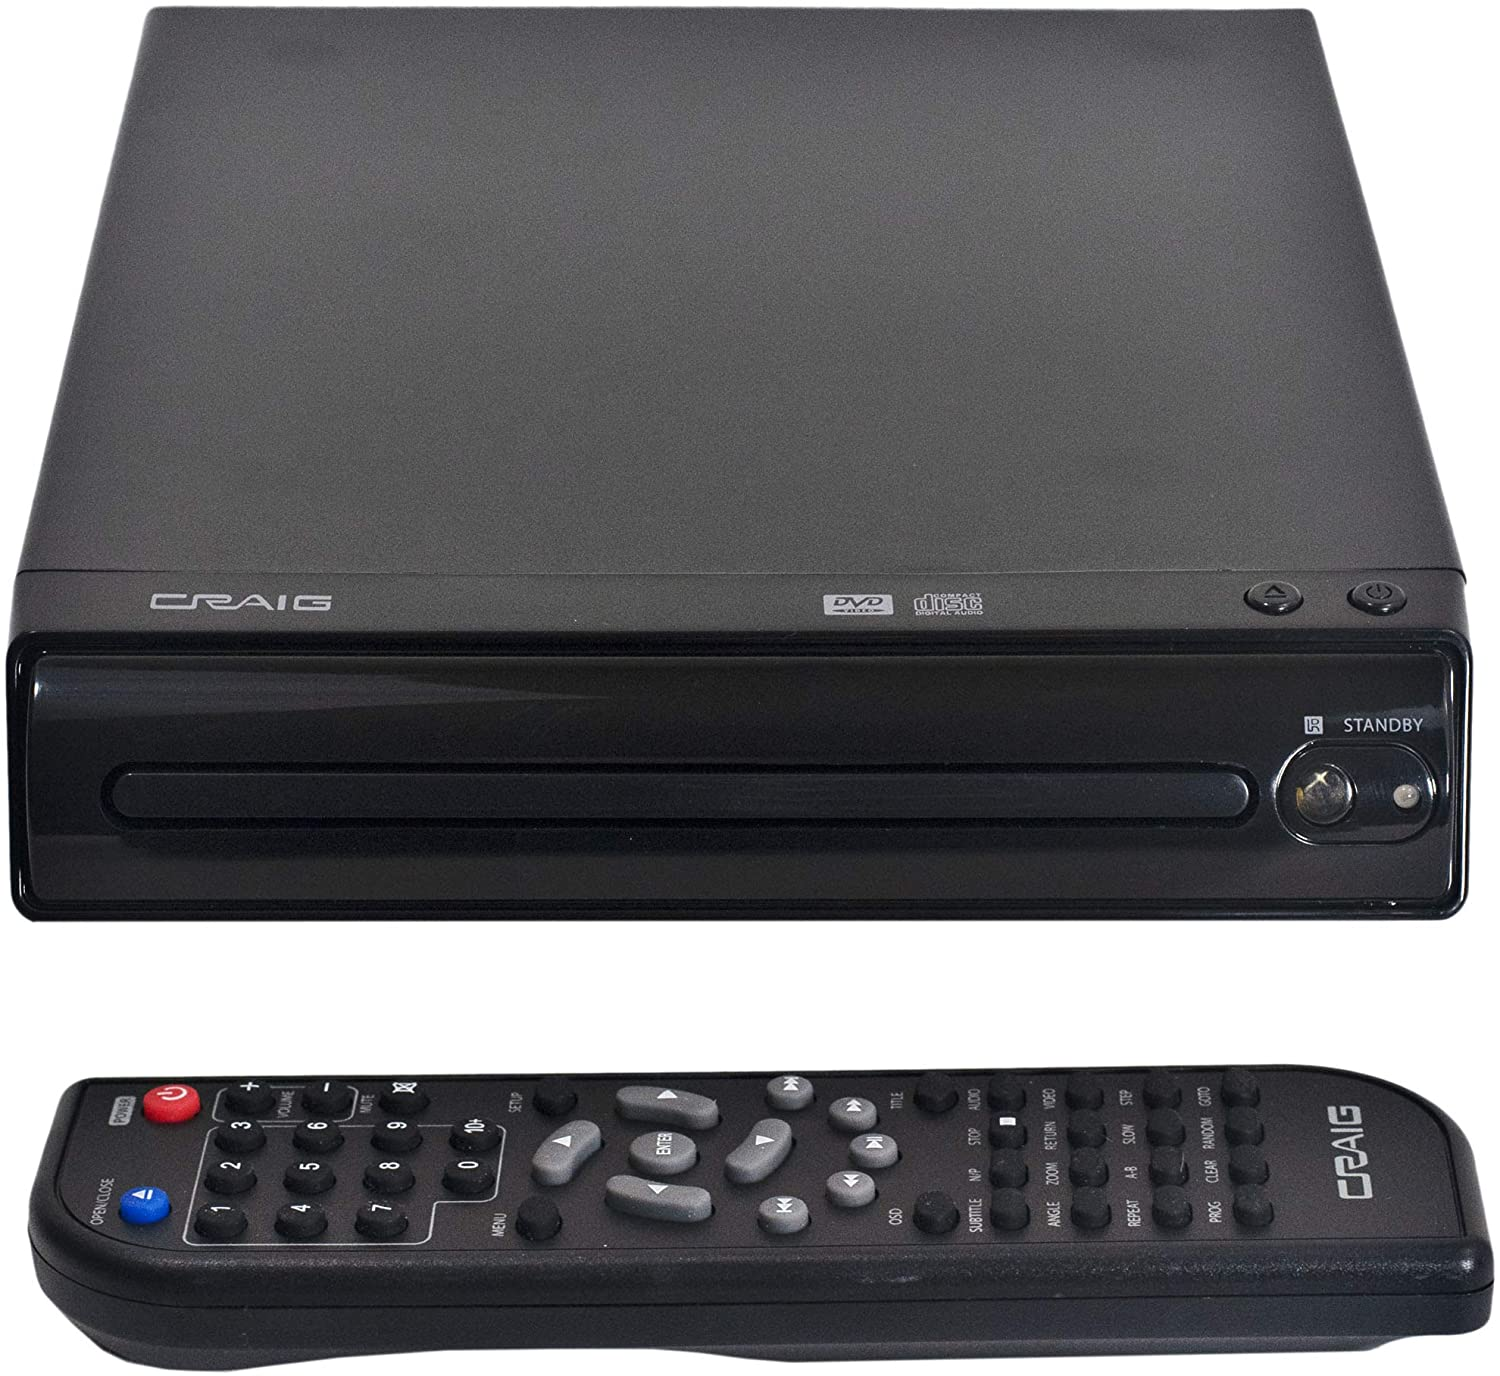 Craig CVD512a Multilingual Compact DVD Player